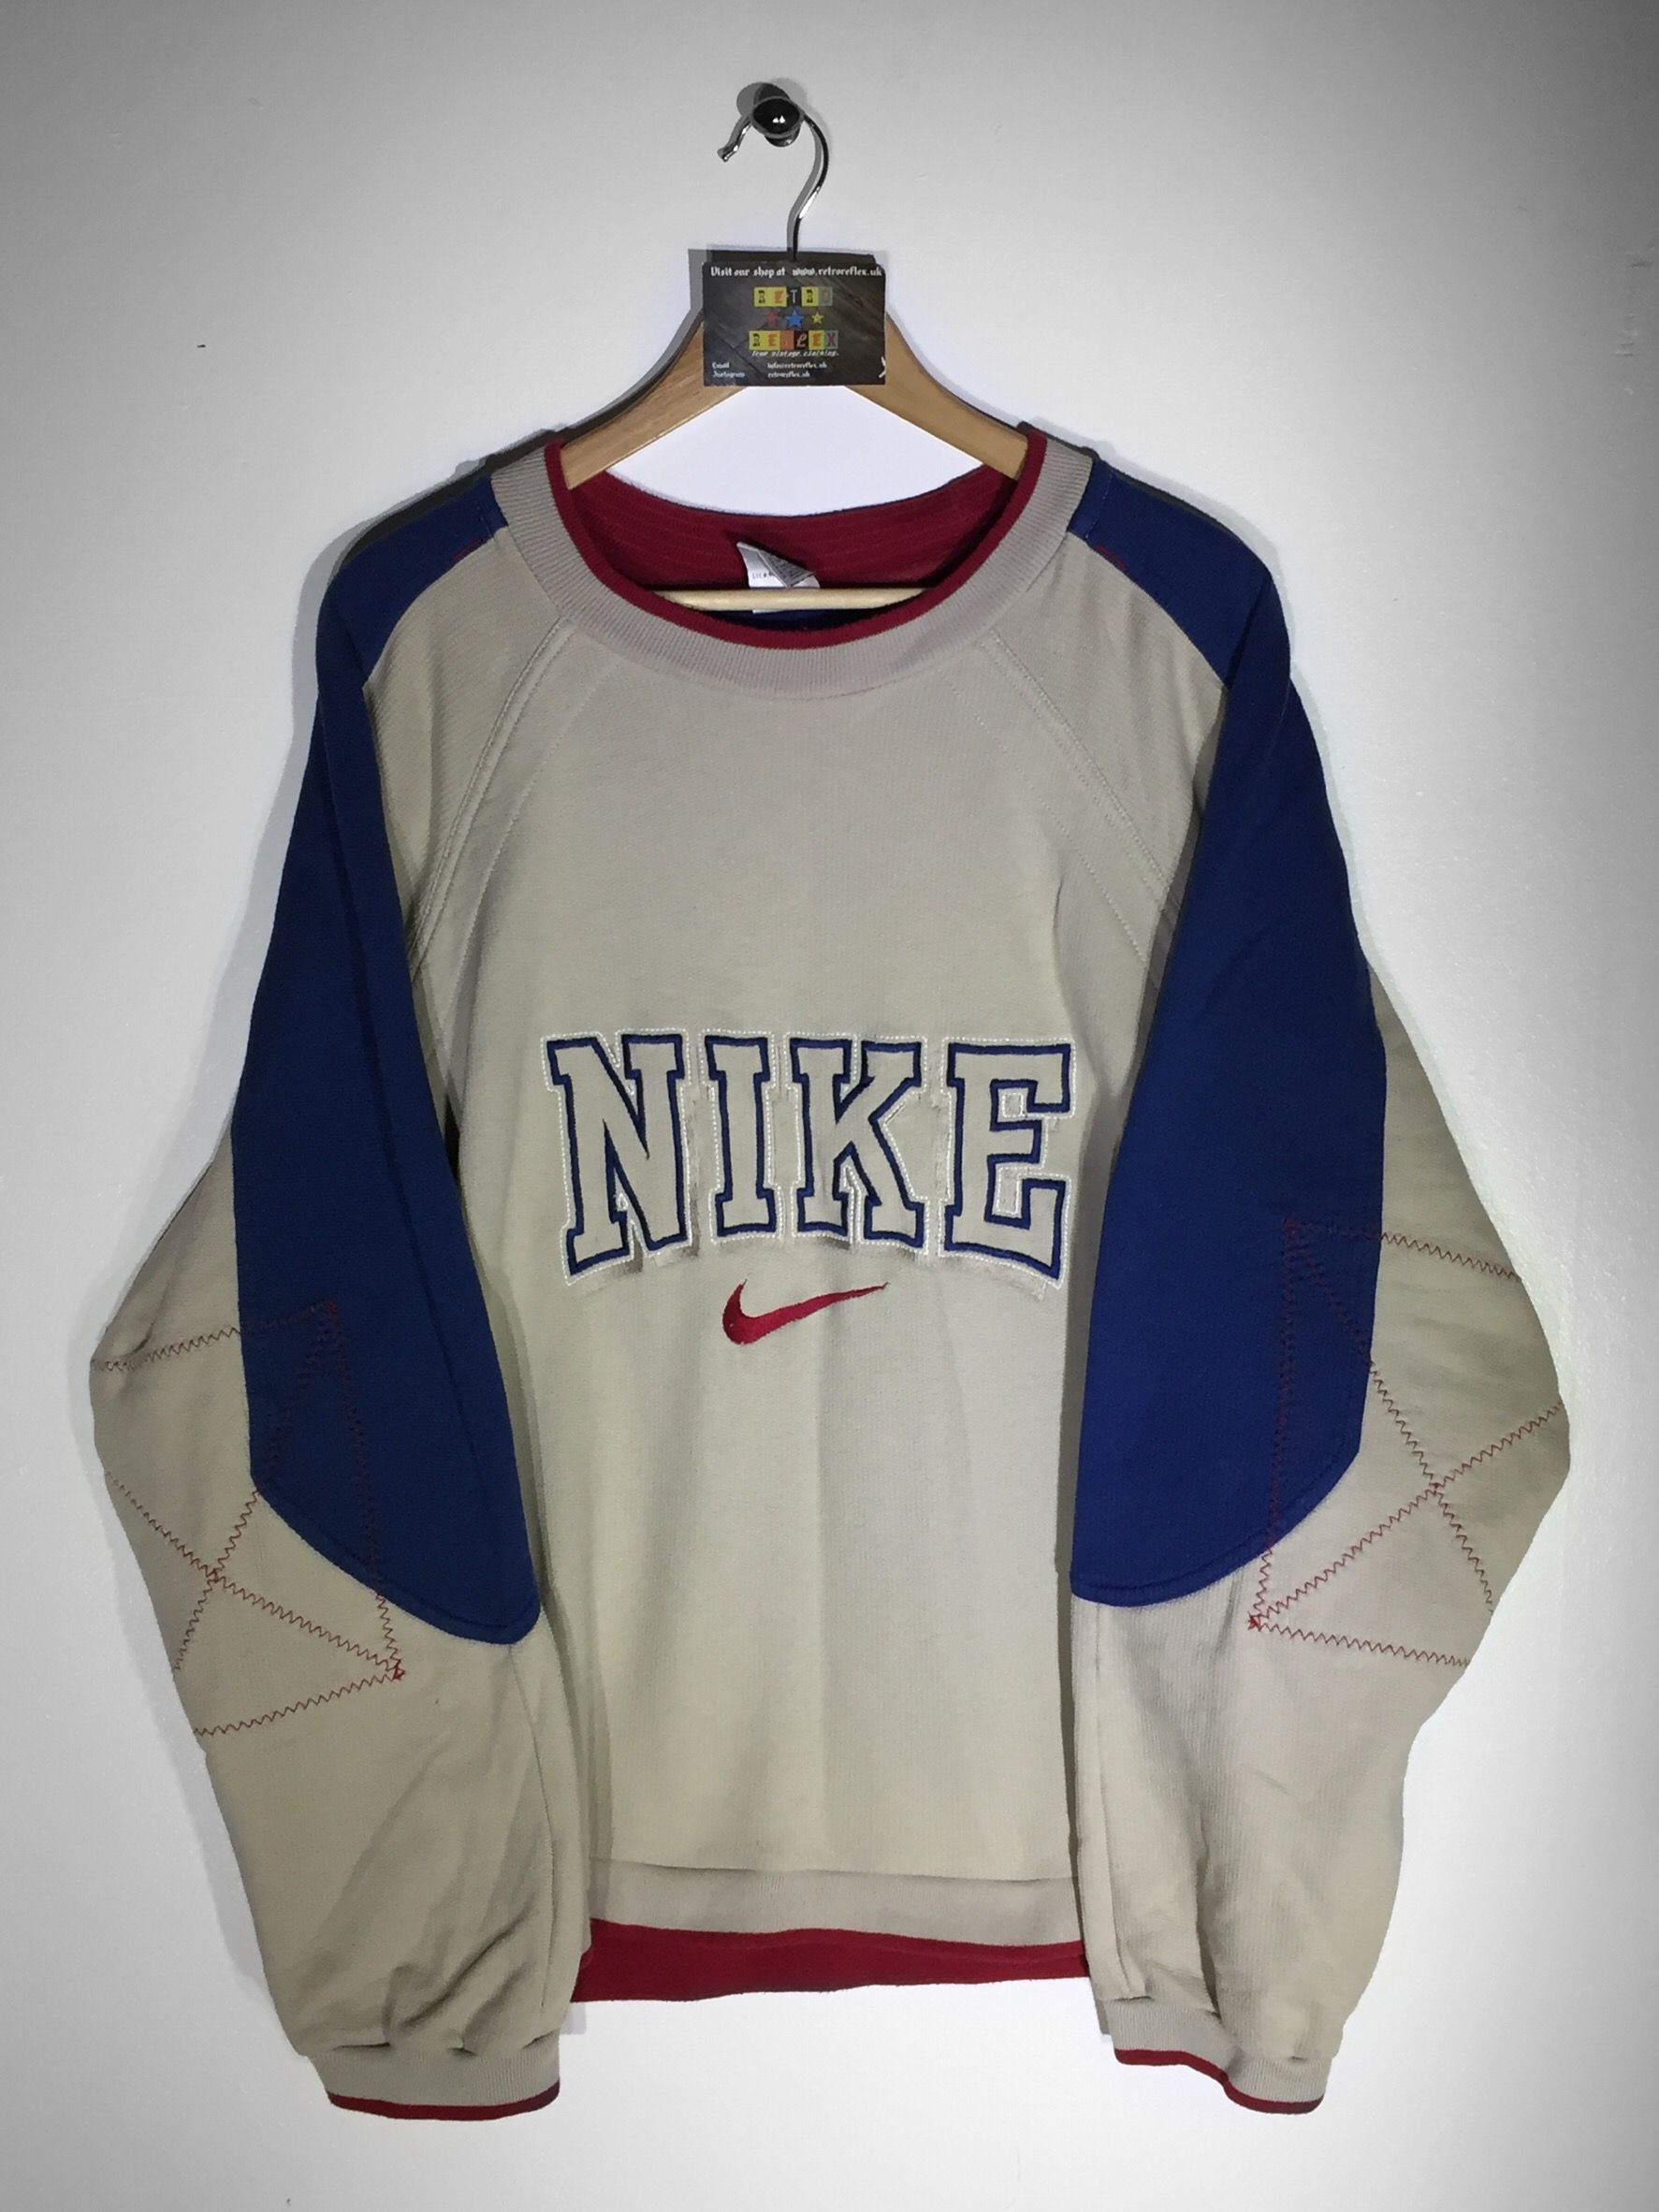 Vintage nike large tee shirt good condition Depop